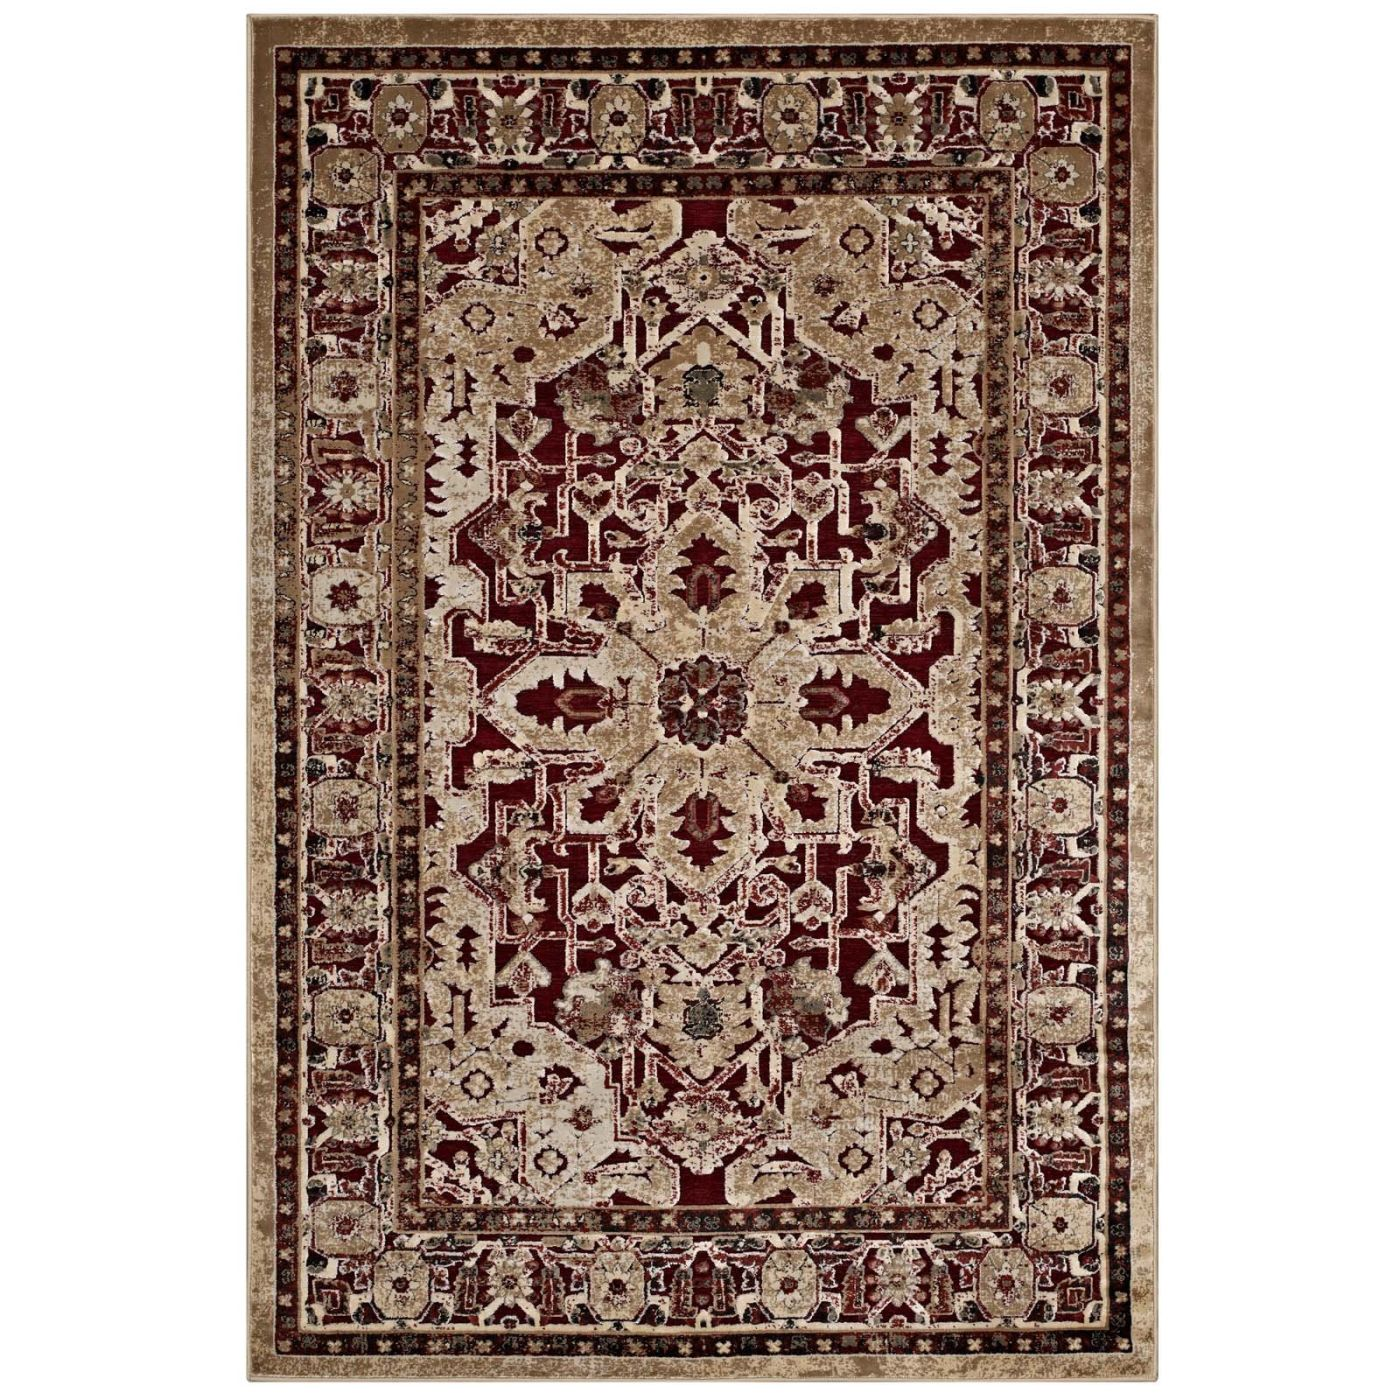 Modway Rugs On Sale. R-1096A-810 Grania Ornate Vintage